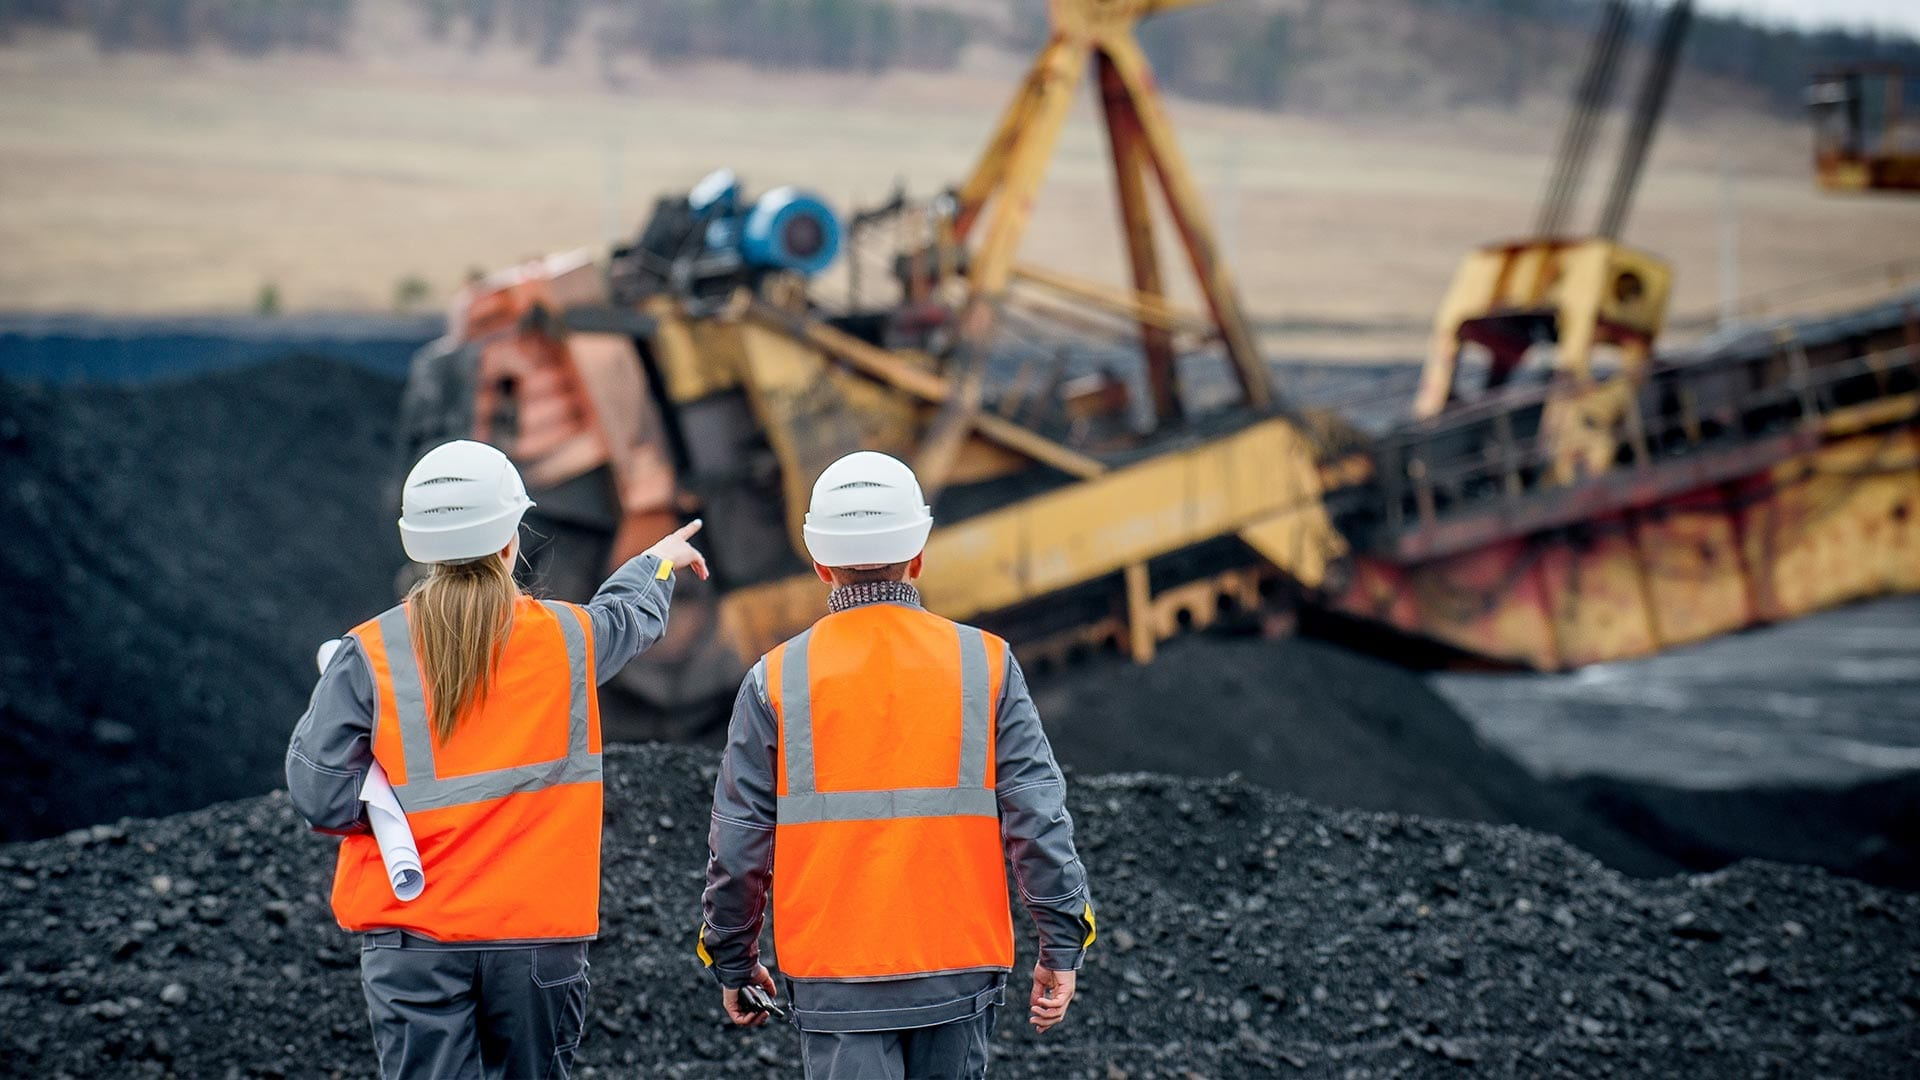 Forsythes Training helps mining companies have the right TAE skills